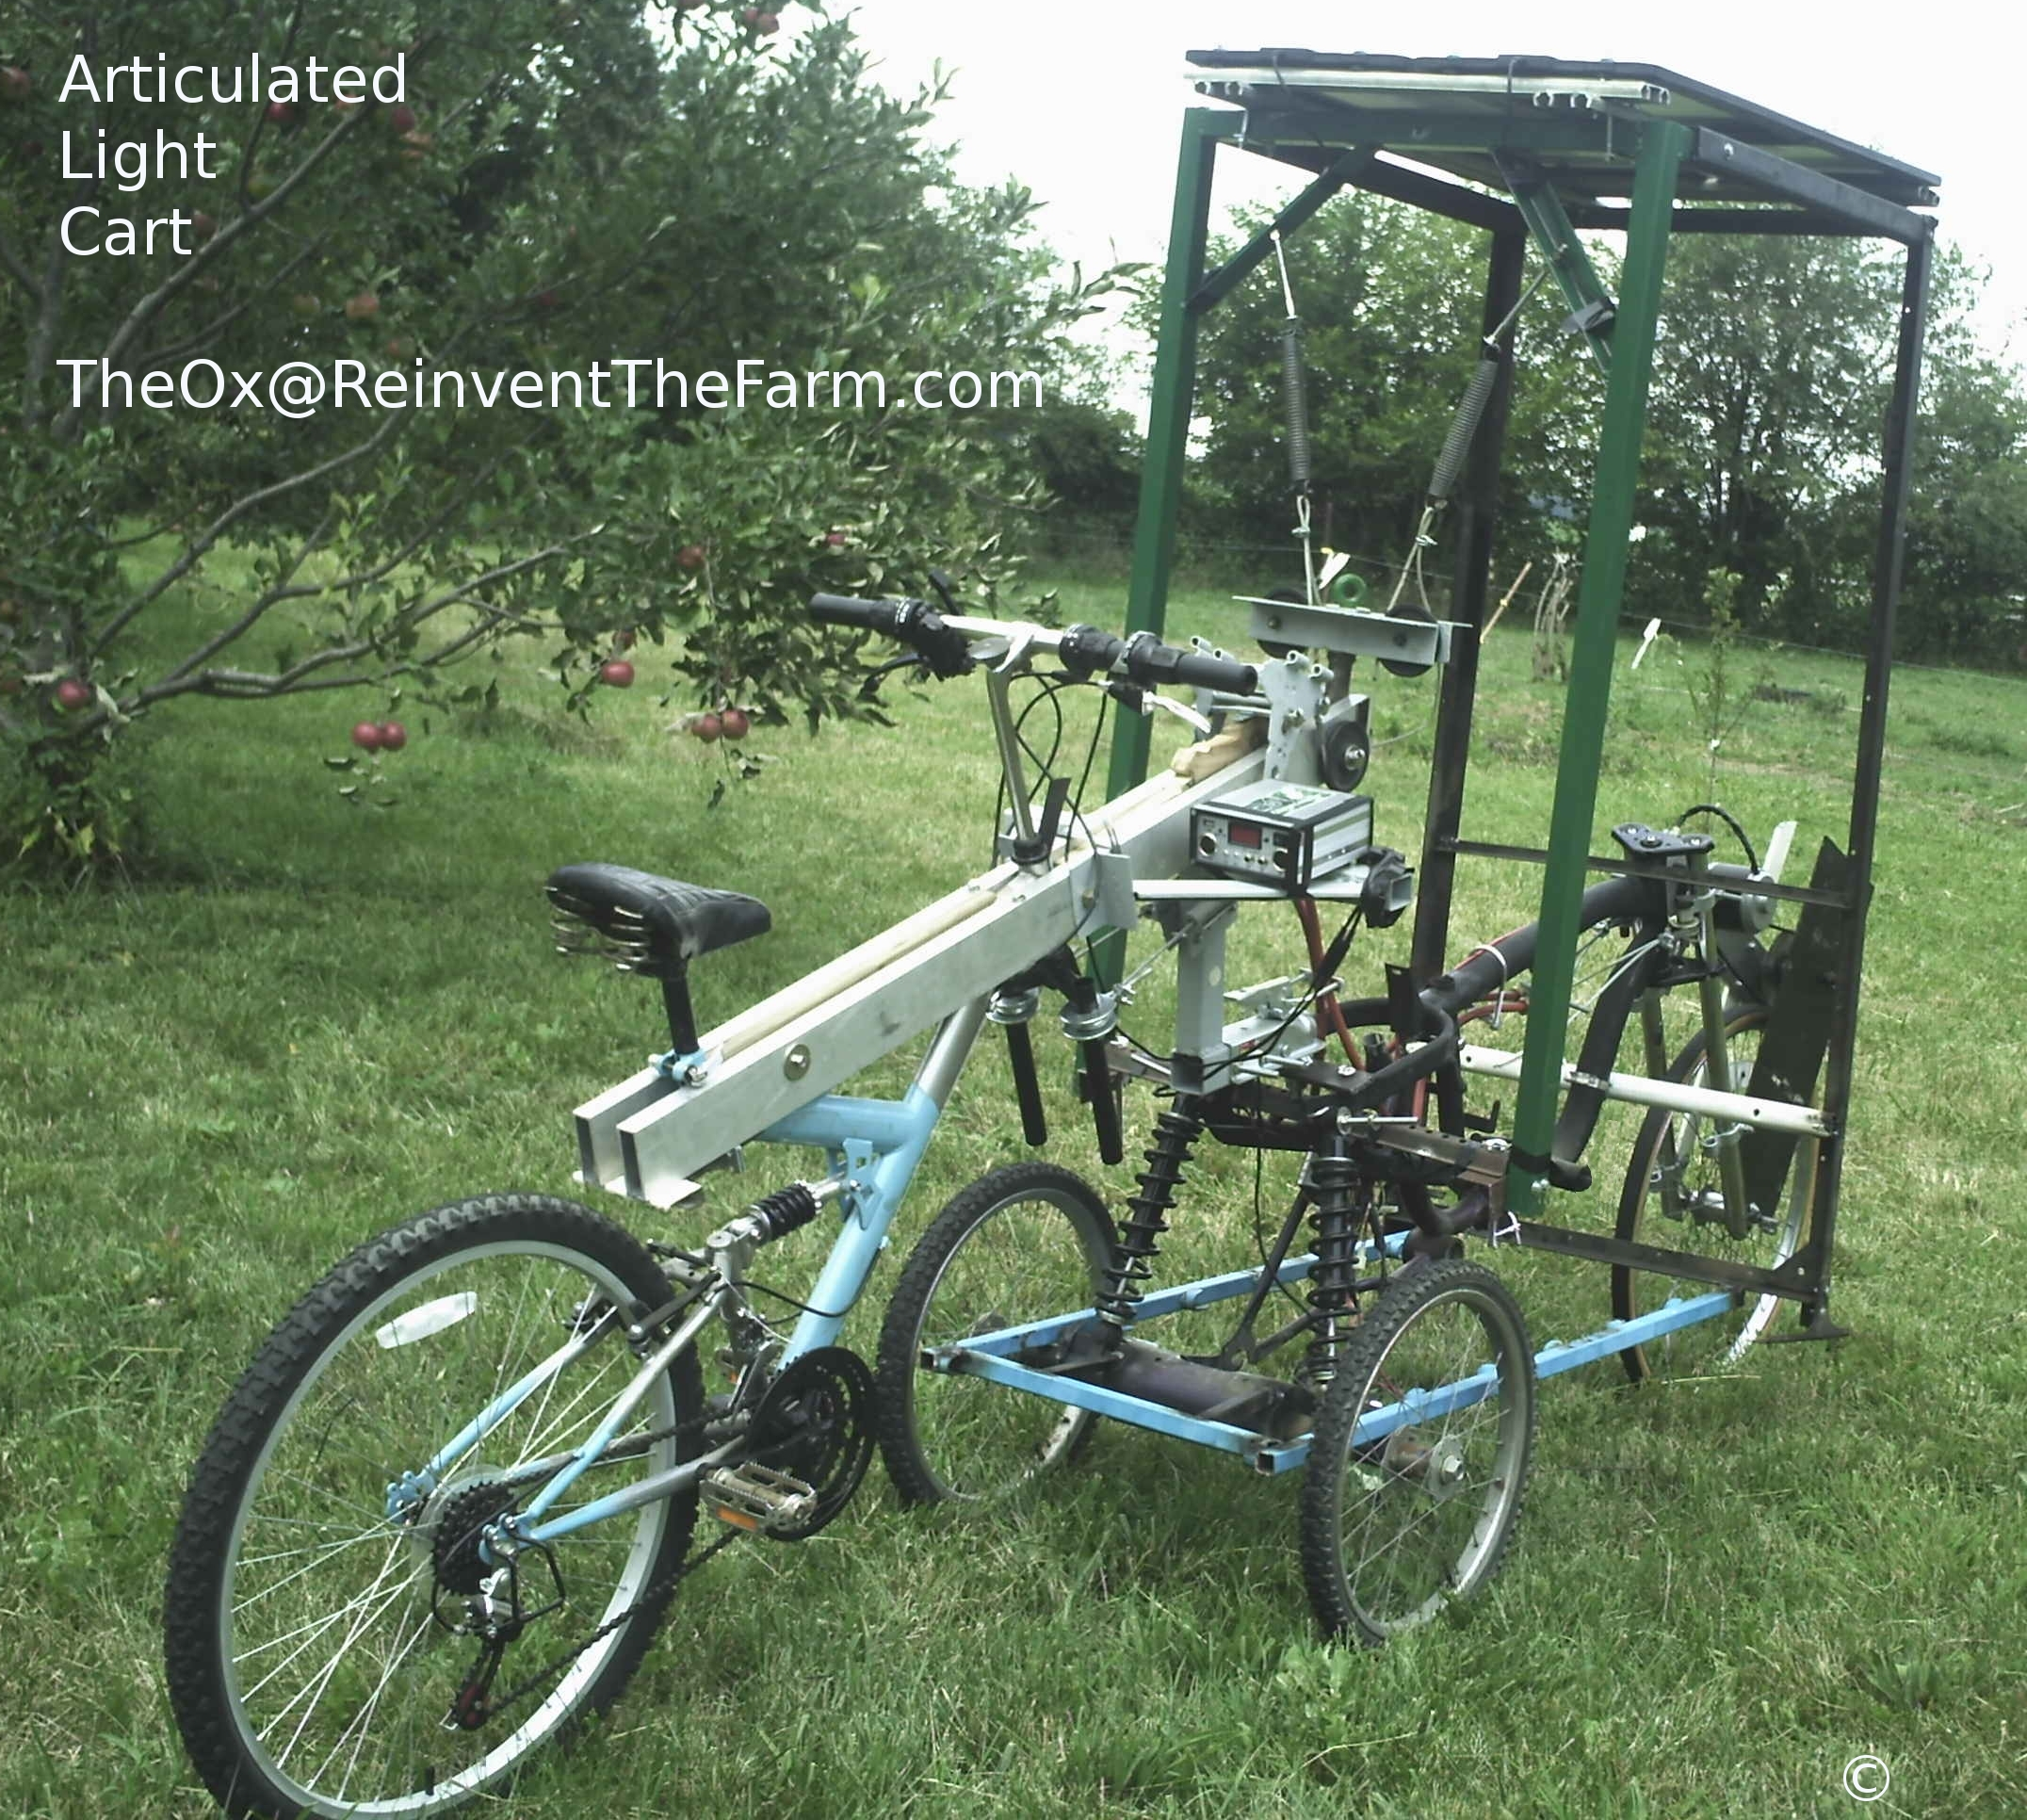 Solar electric and human hybrid powered Articulated Light Cart